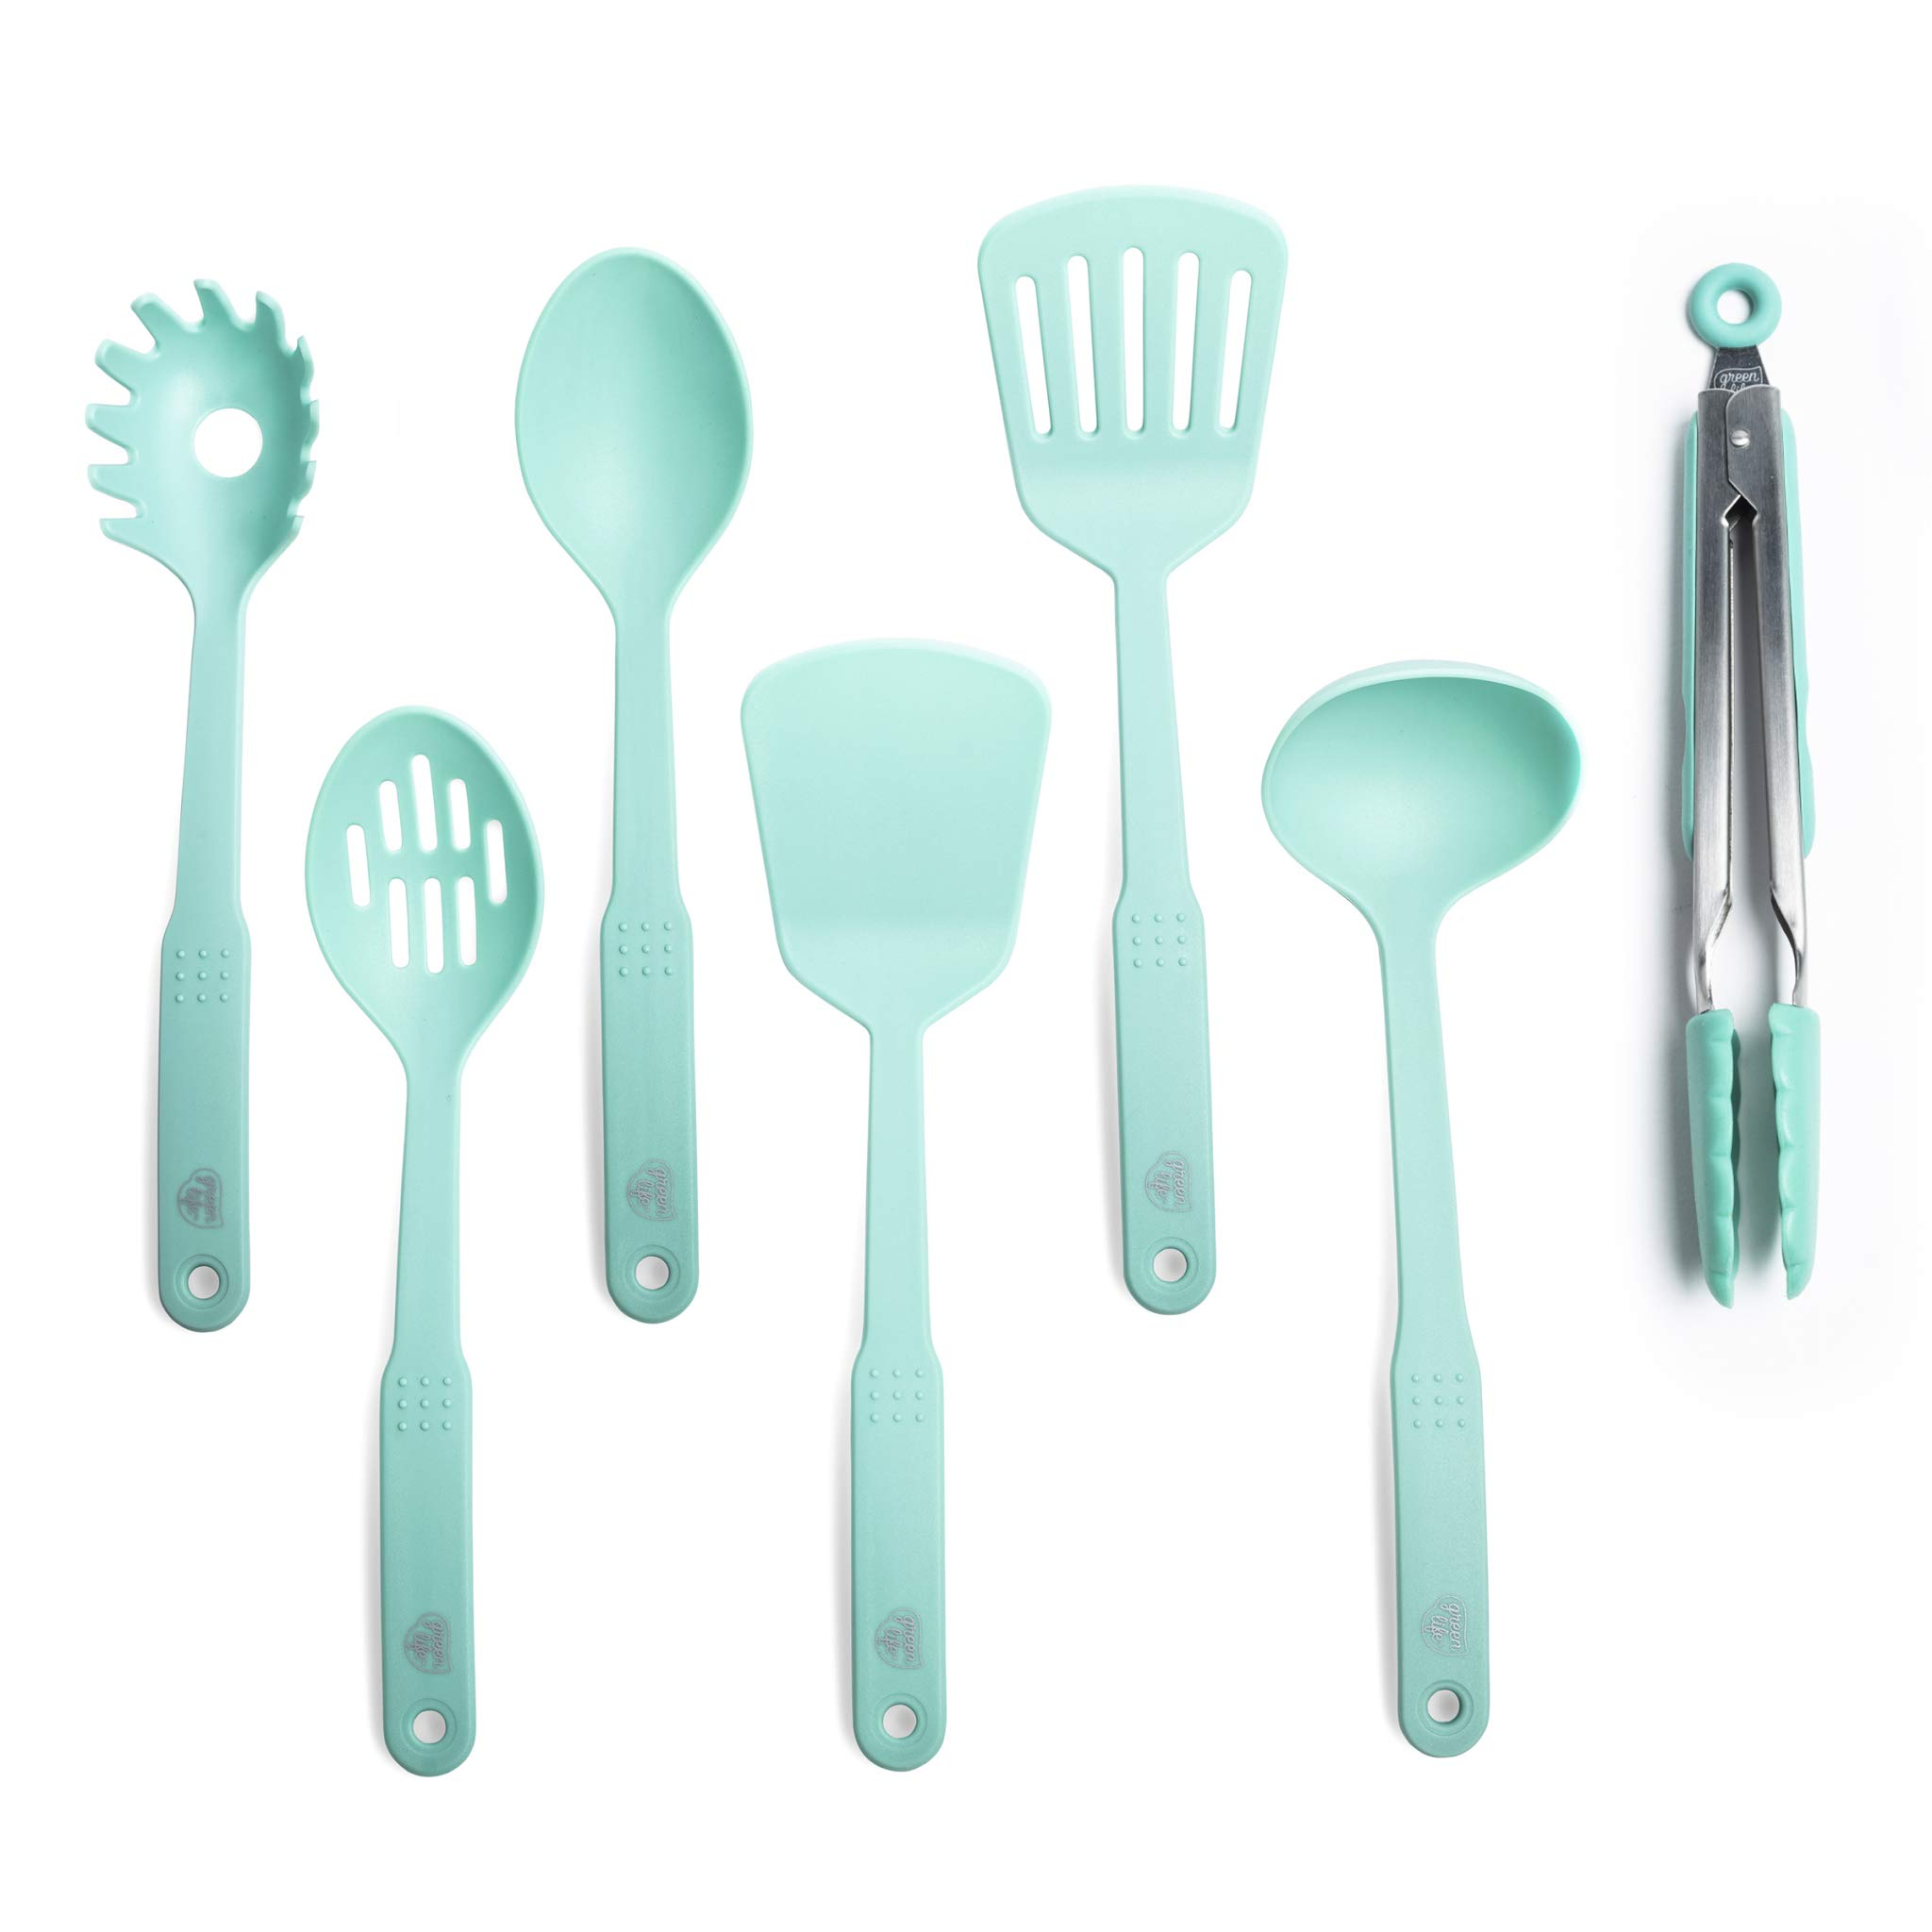 GreenLife CC001729-001 Nylon Cooking Set, 7-Piece, Turquoise, 7pc Utensil, Turqouise by GreenLife